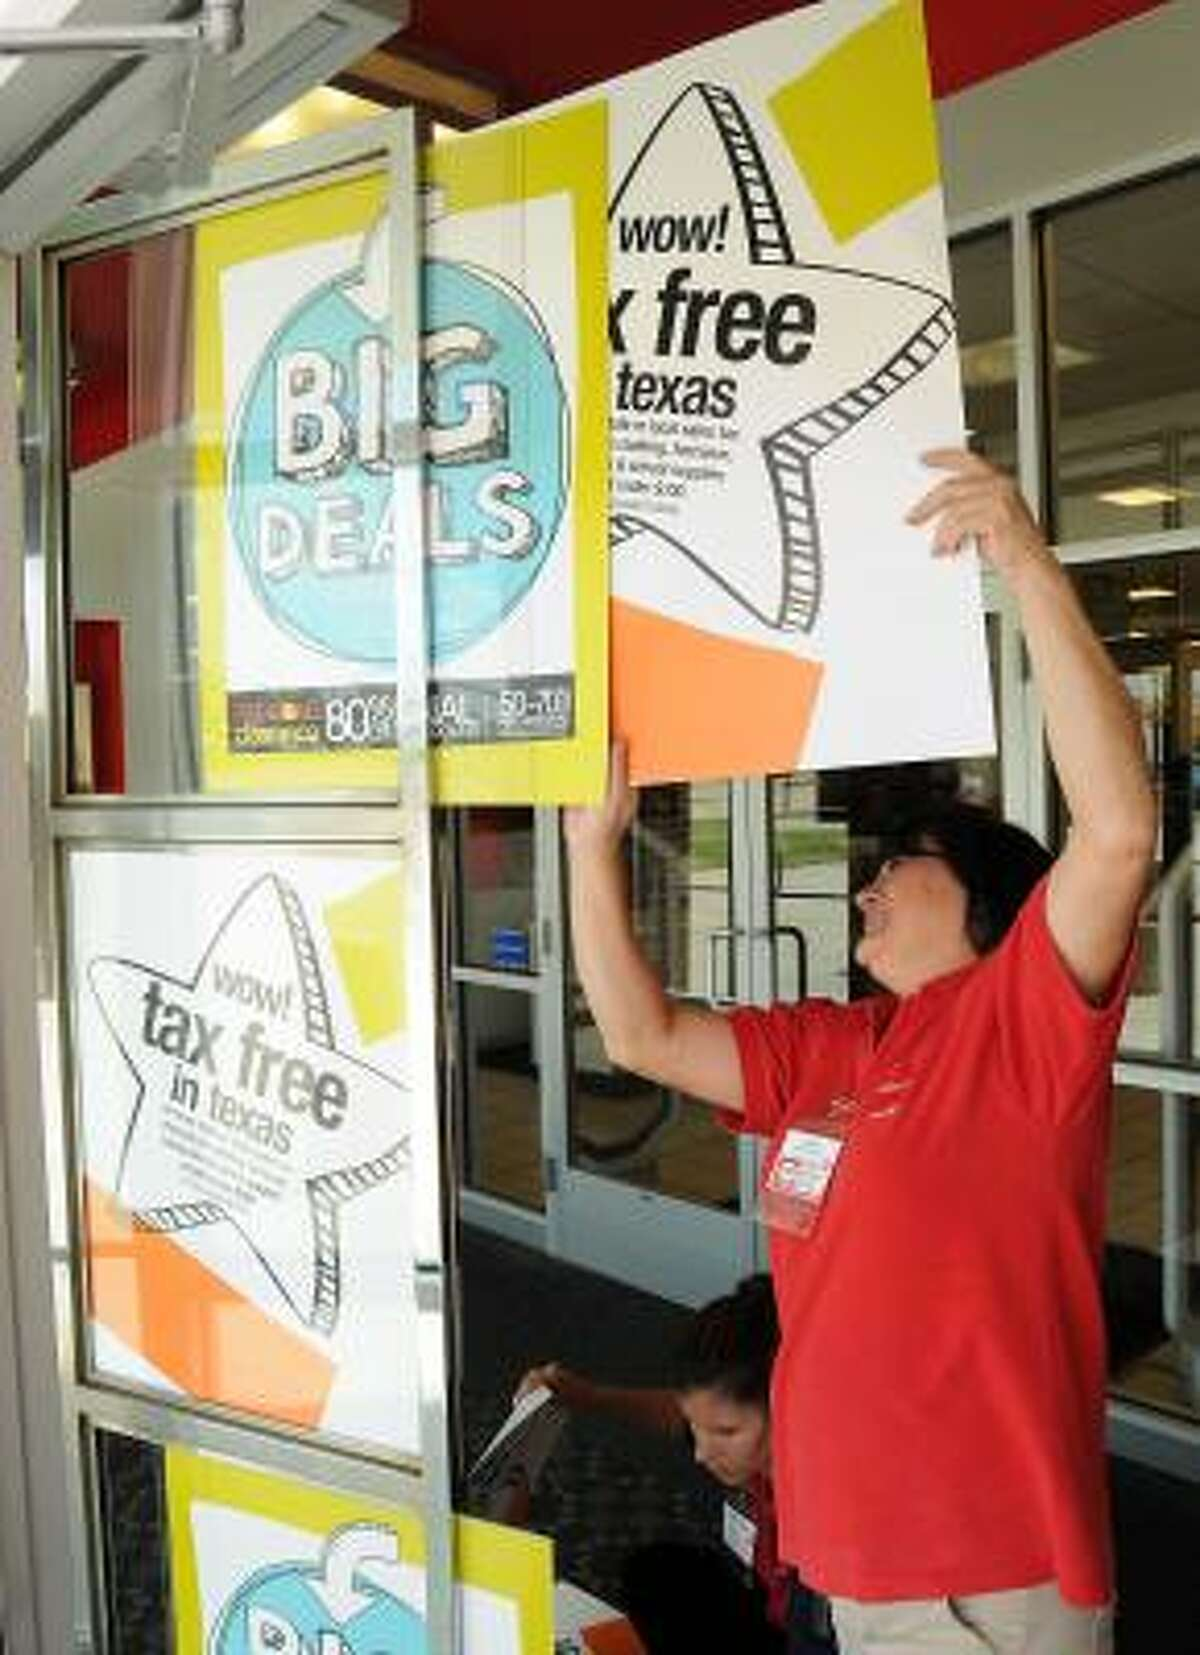 Fran Atchison posts a tax-free sign at the JC Penney in Katy.